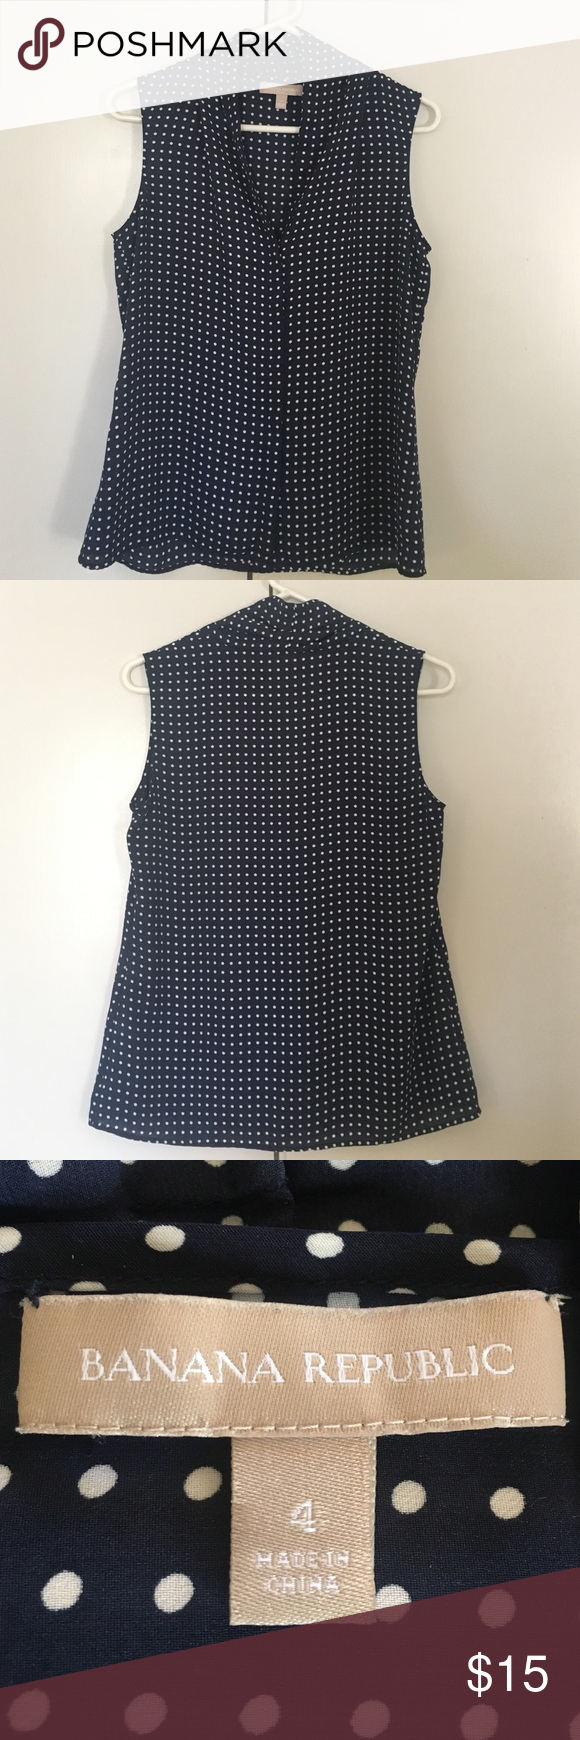 Navy Banana Republic sleeveless work blouse Light weight navy blue polka dot blouse, perfect for business casual outfits. Size 4. Good condition. Banana Republic Tops Blouses